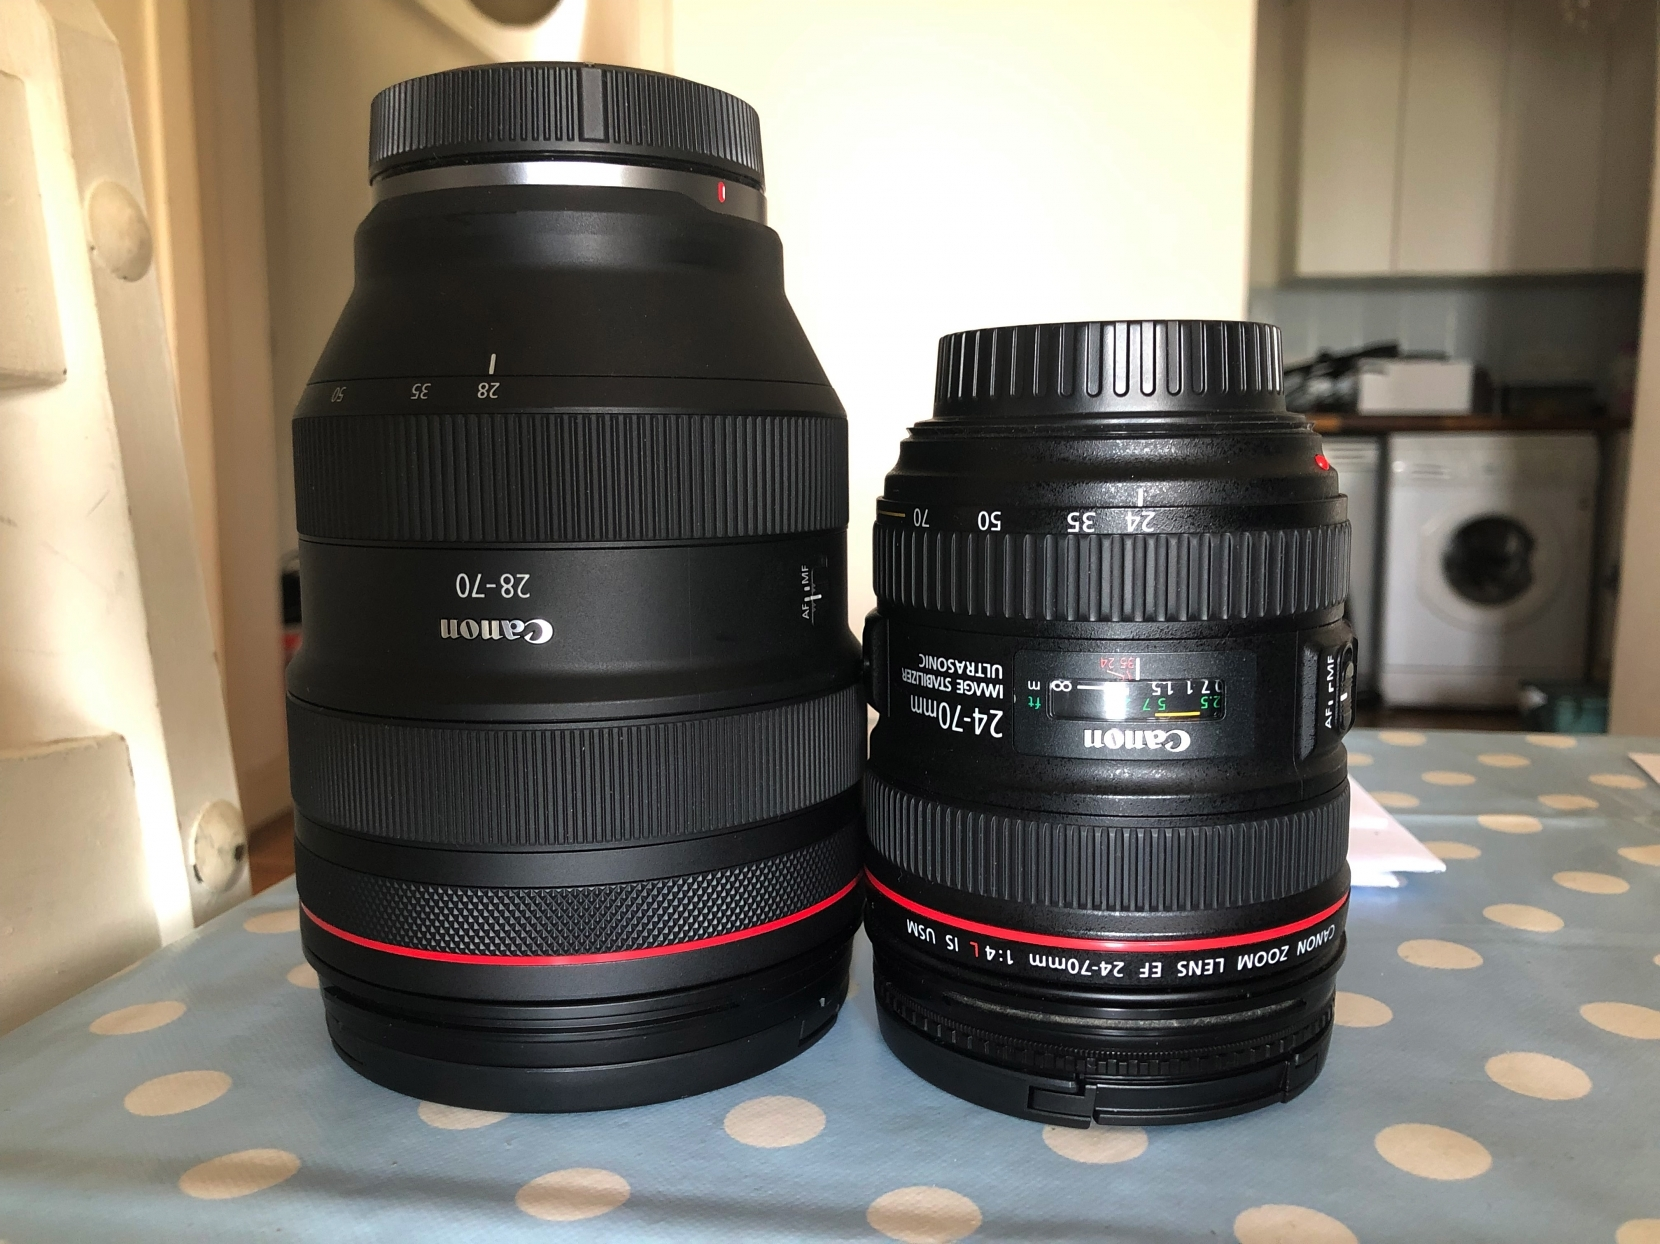 In comparison to the EF 24-70 f4L IS, then lens is three times as heavy and offers an extra two stops of performance